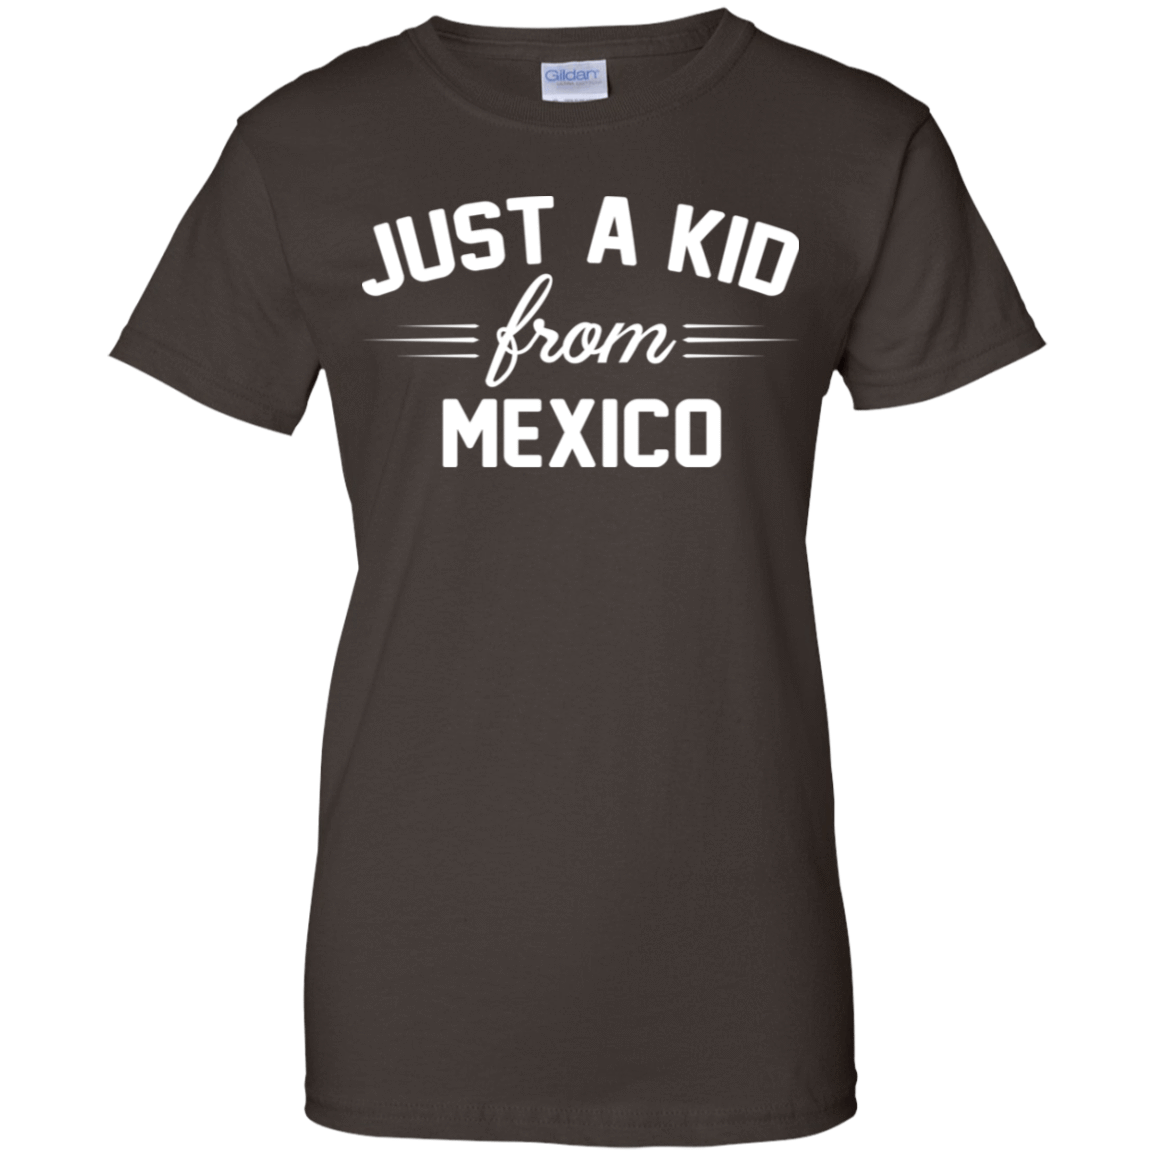 Just a Kid Store | Mexico T-Shirts, Hoodie, Tank 939-9251-72091593-44702 - Tee Ript